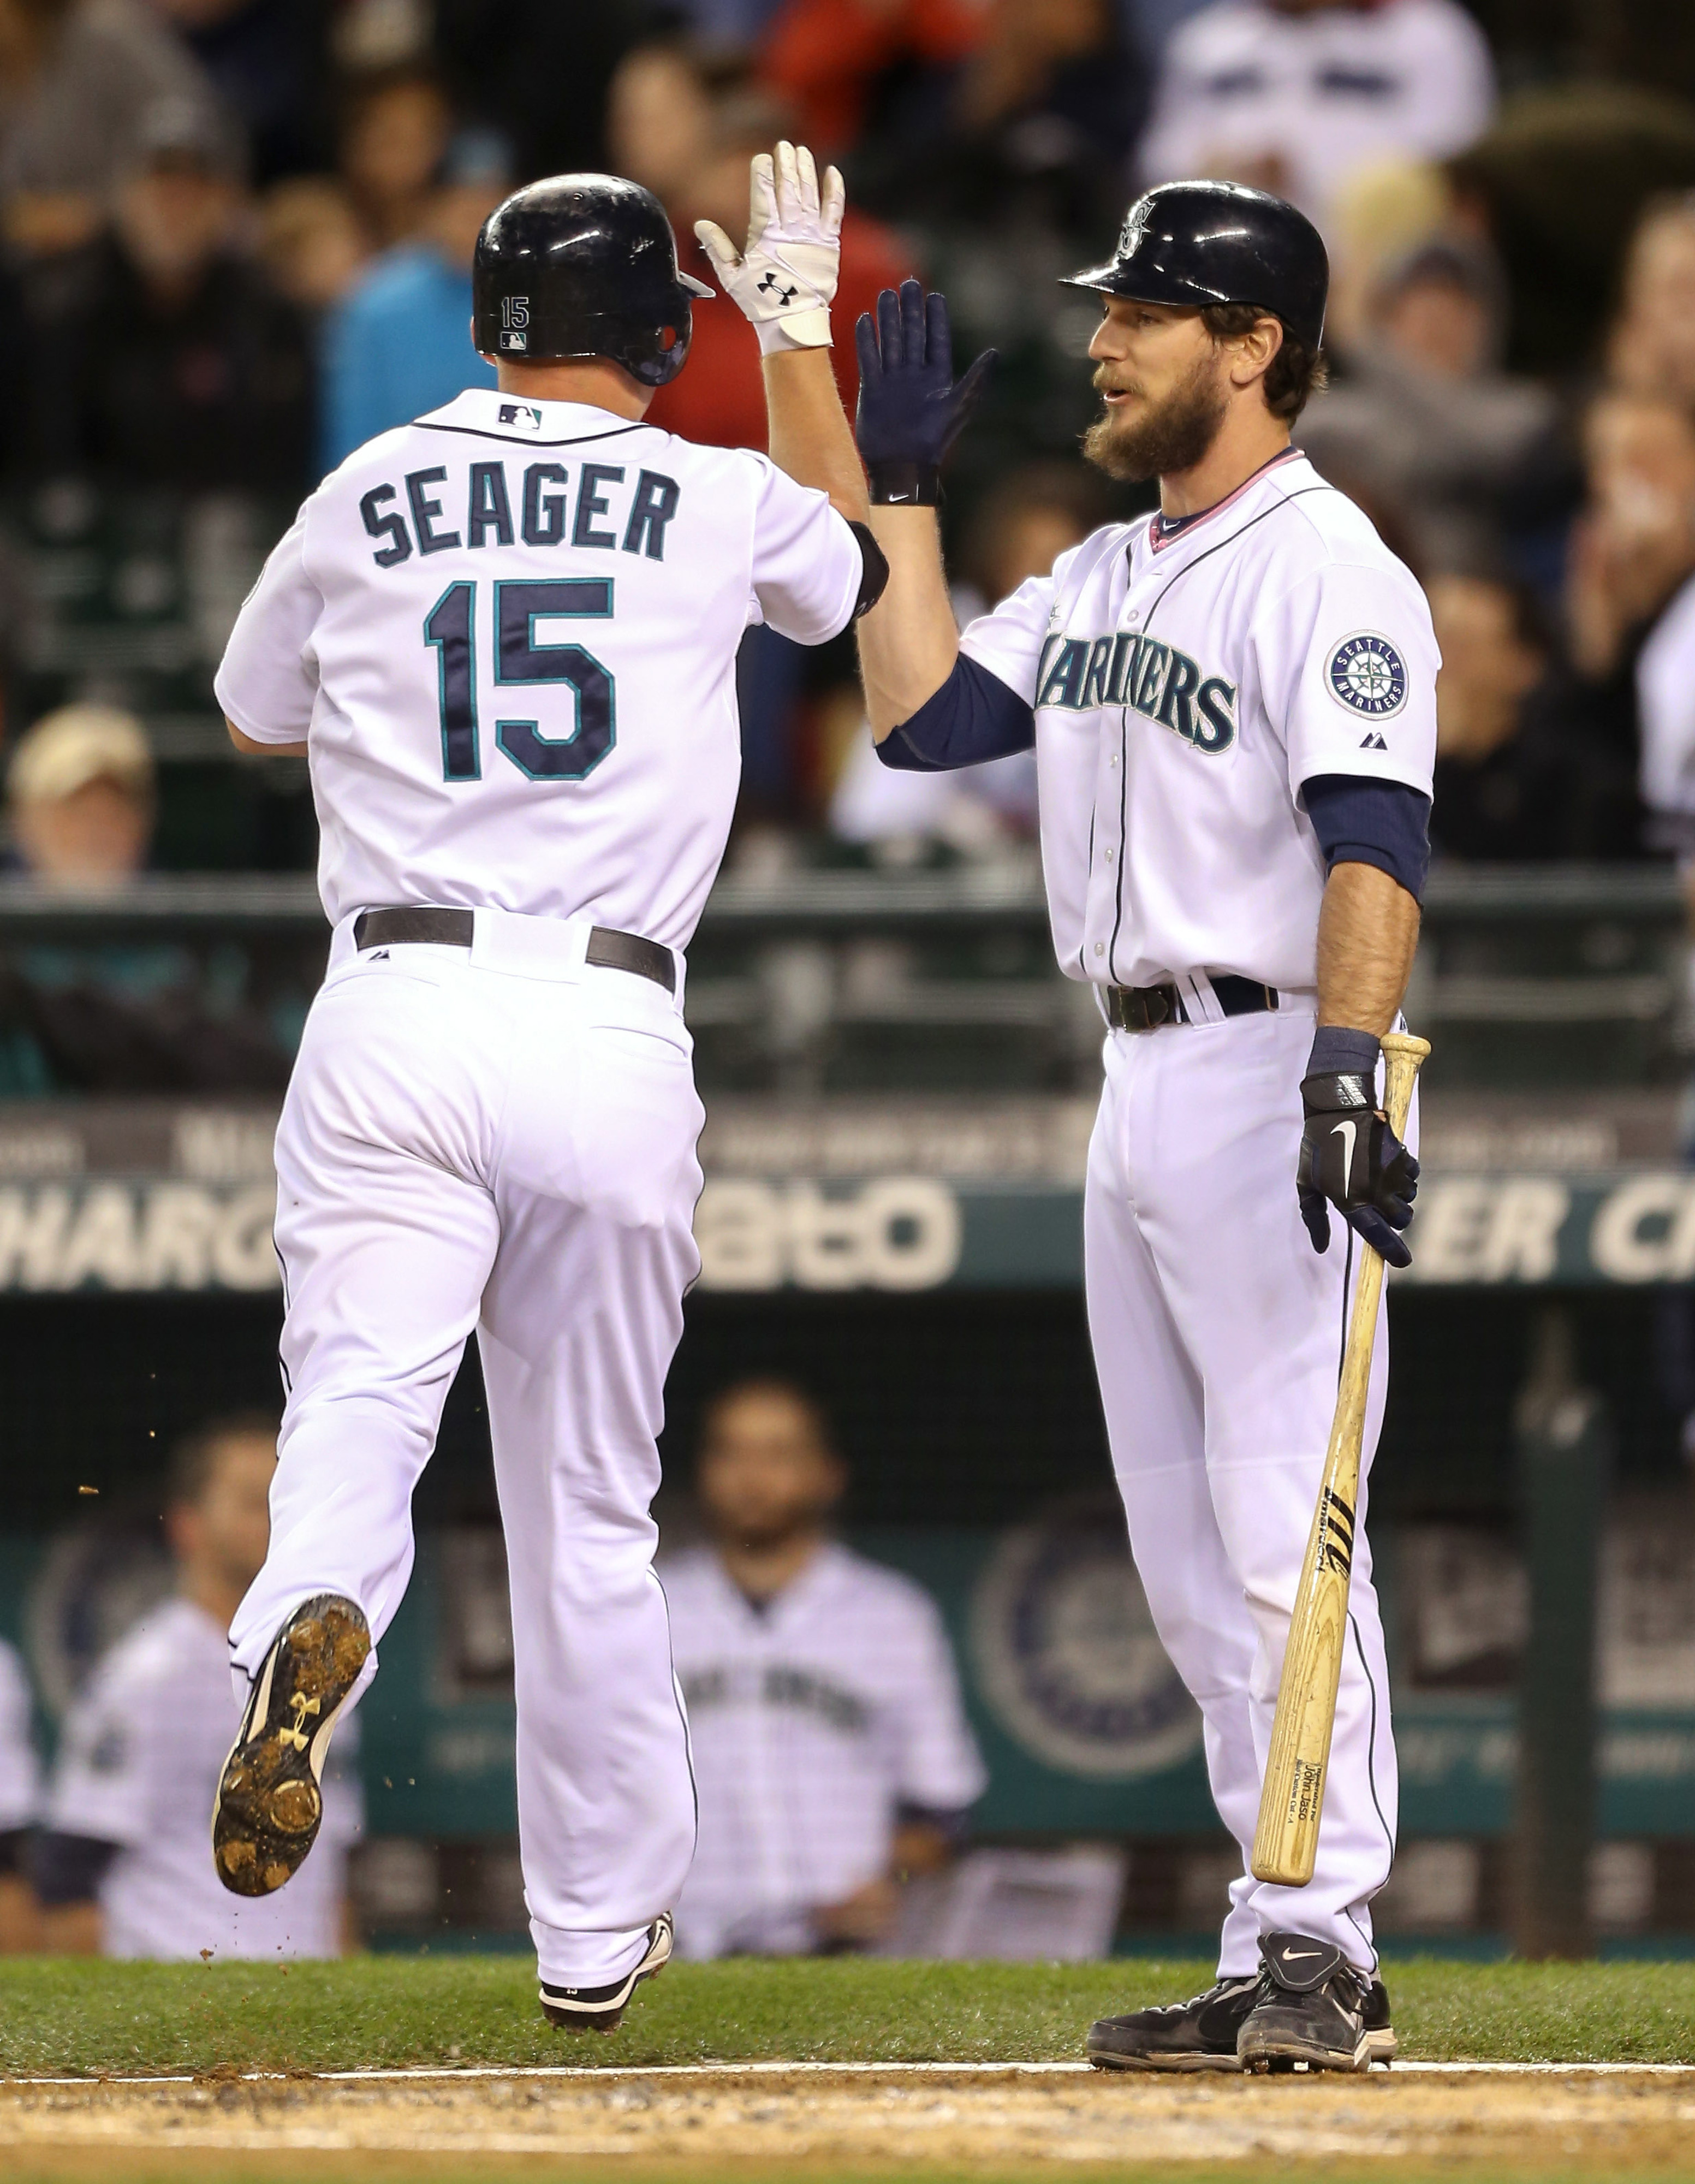 Will TBLA 2013 #3 prospect Corey Seager have a better career than his brother?